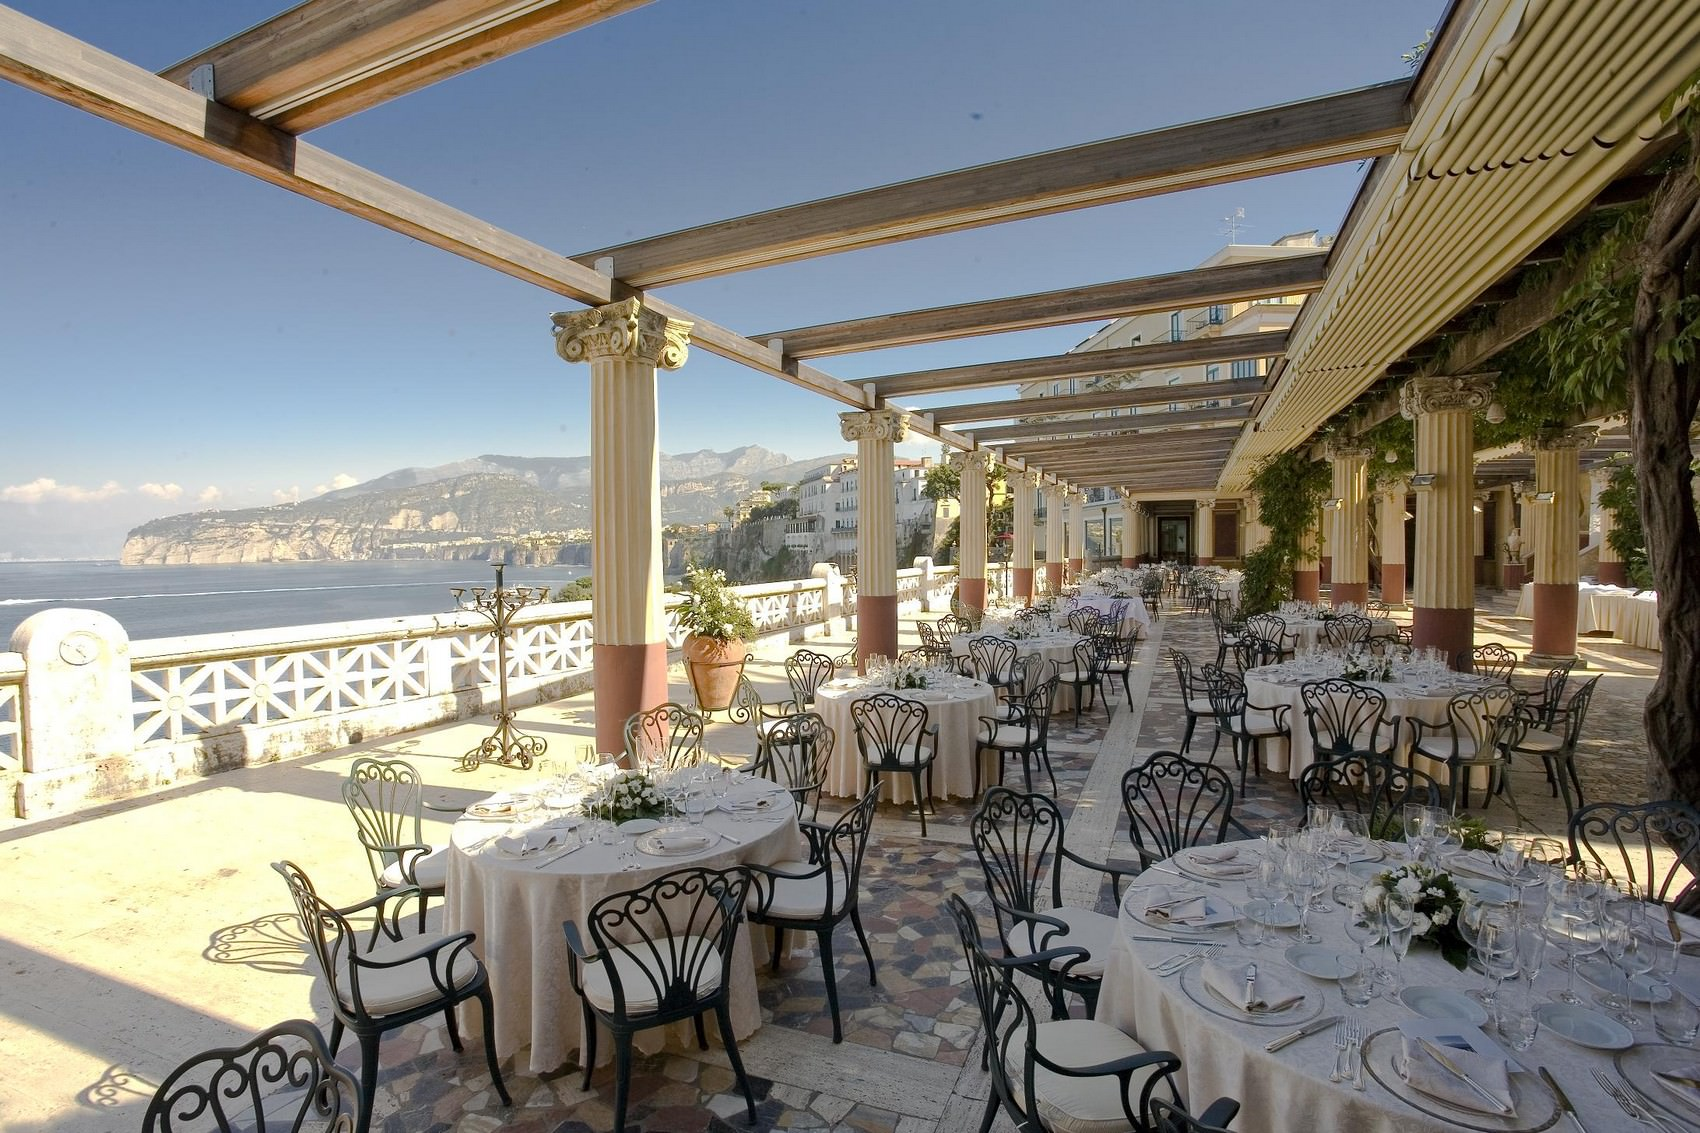 Bellevue Syrene Wedding Sorrento Amalfi Coast Italy Wedding